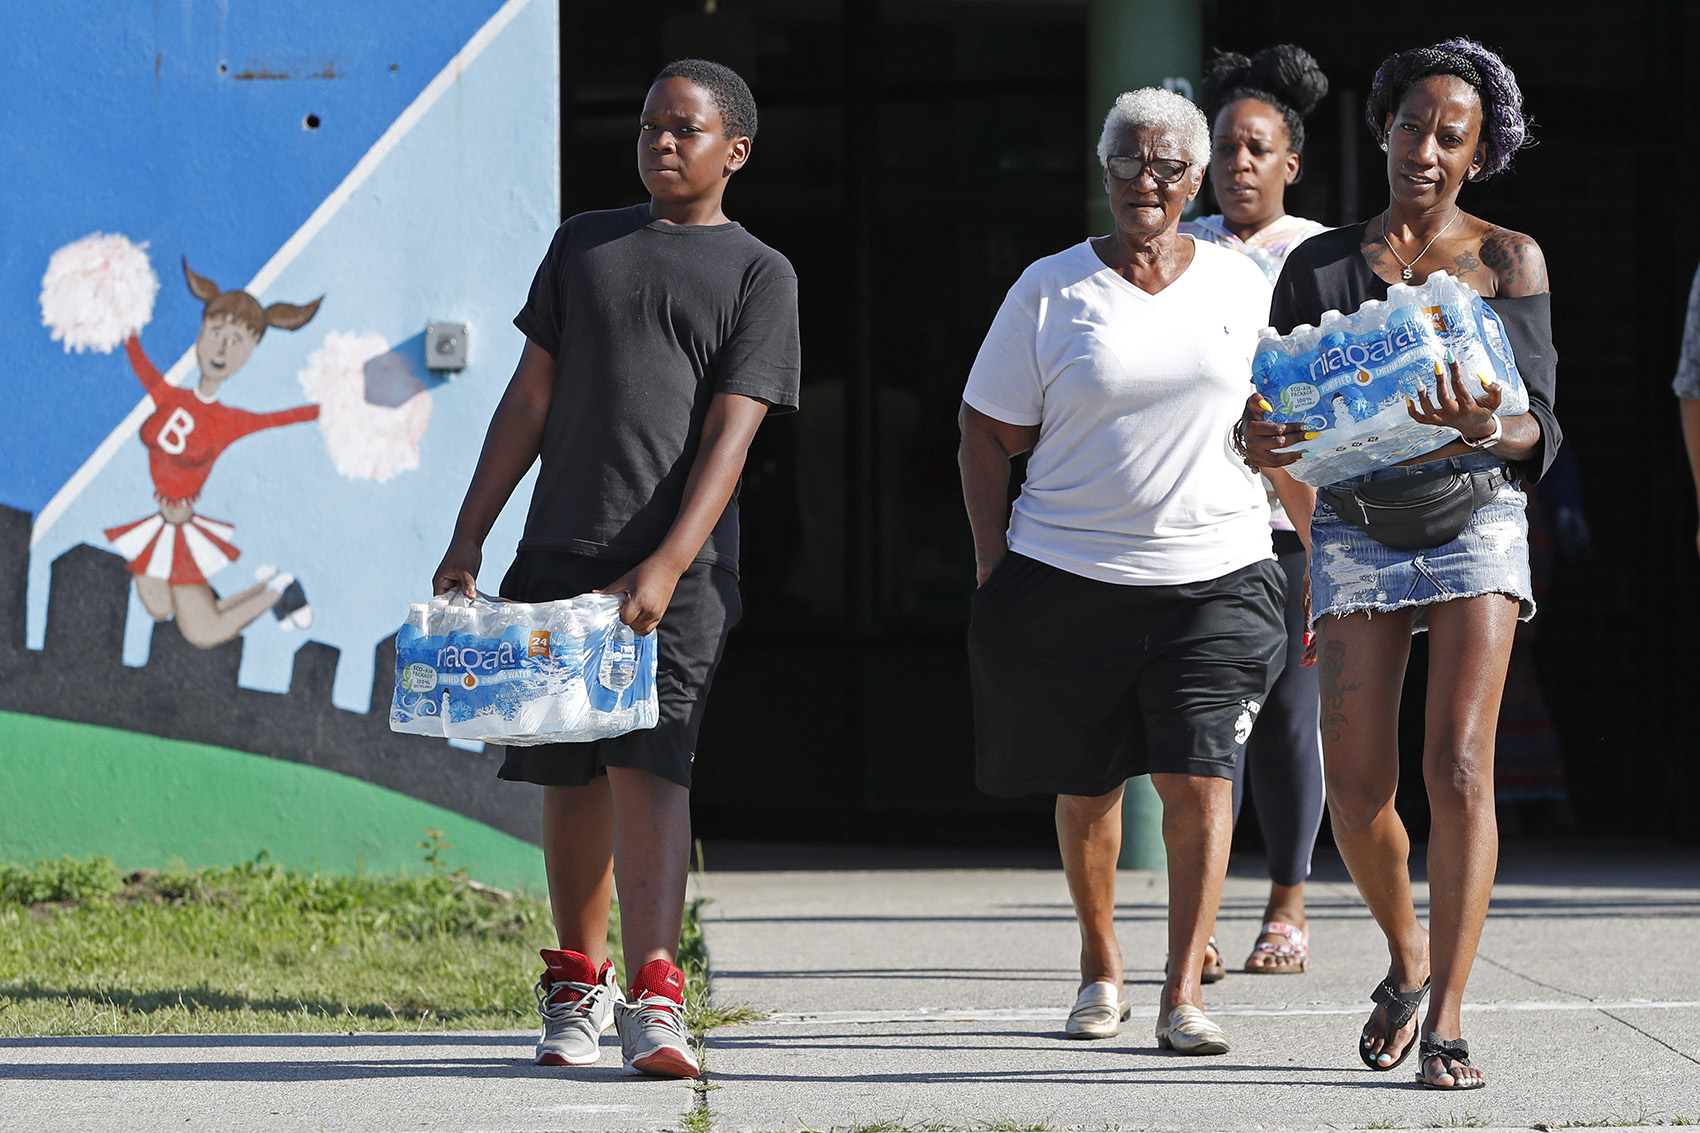 A Water Crisis In Newark, A Lead Problem Echoing Flint